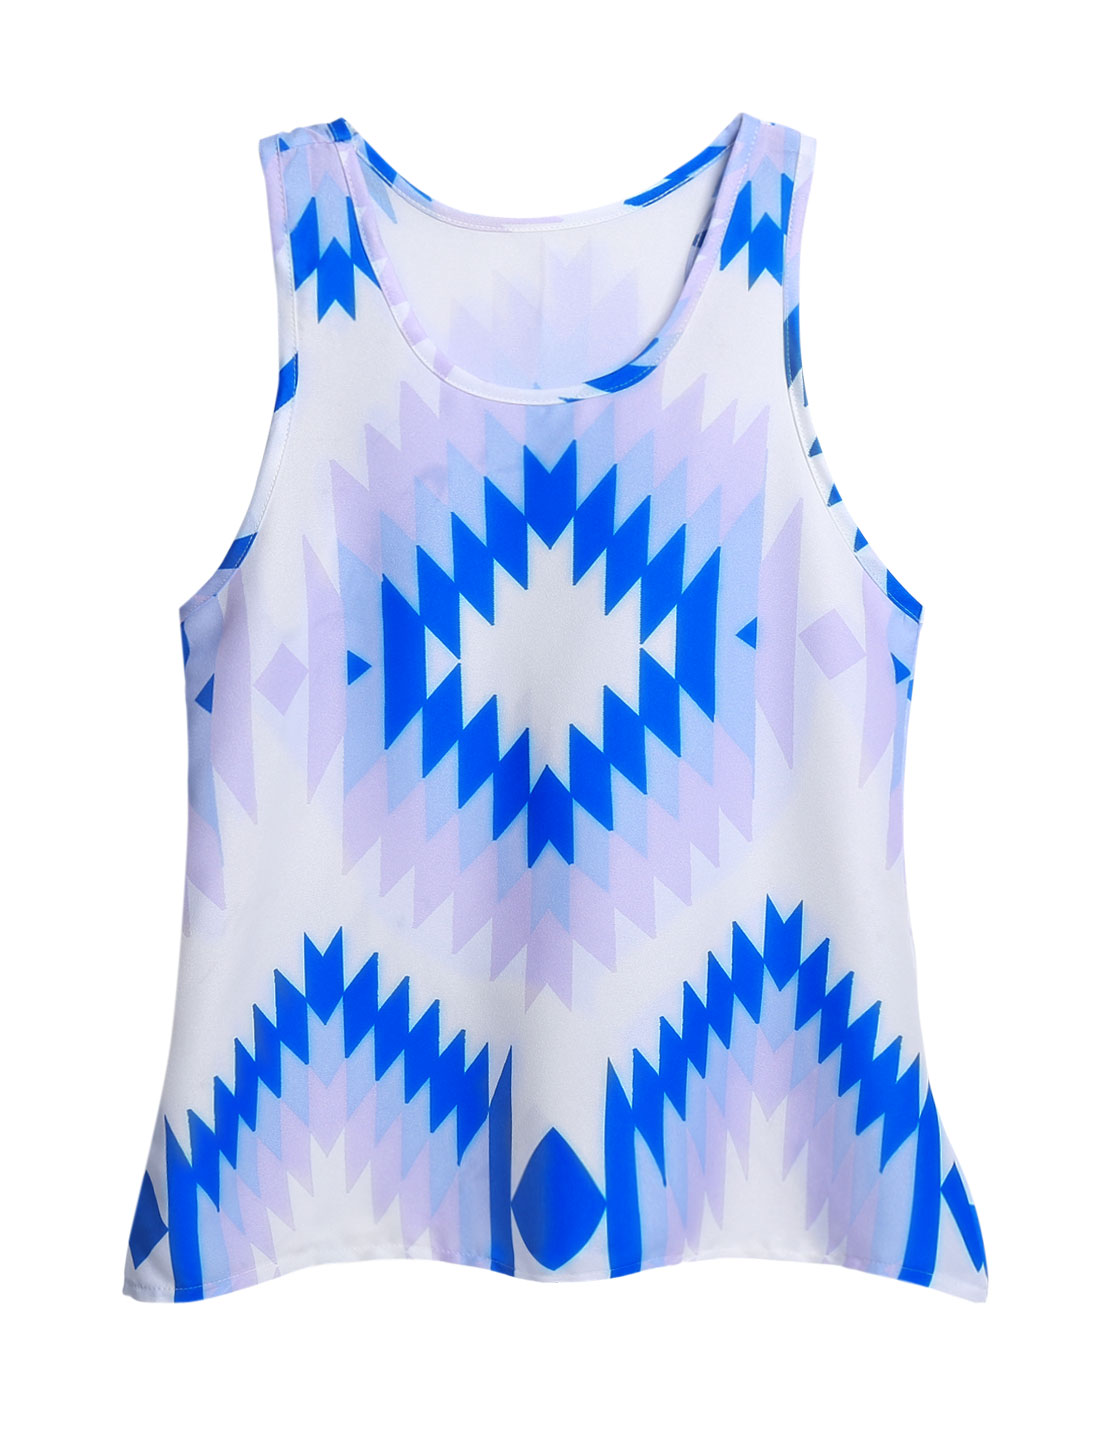 Woman Geometrical Prints Scoop Neck Casual Tank Top White Blue M